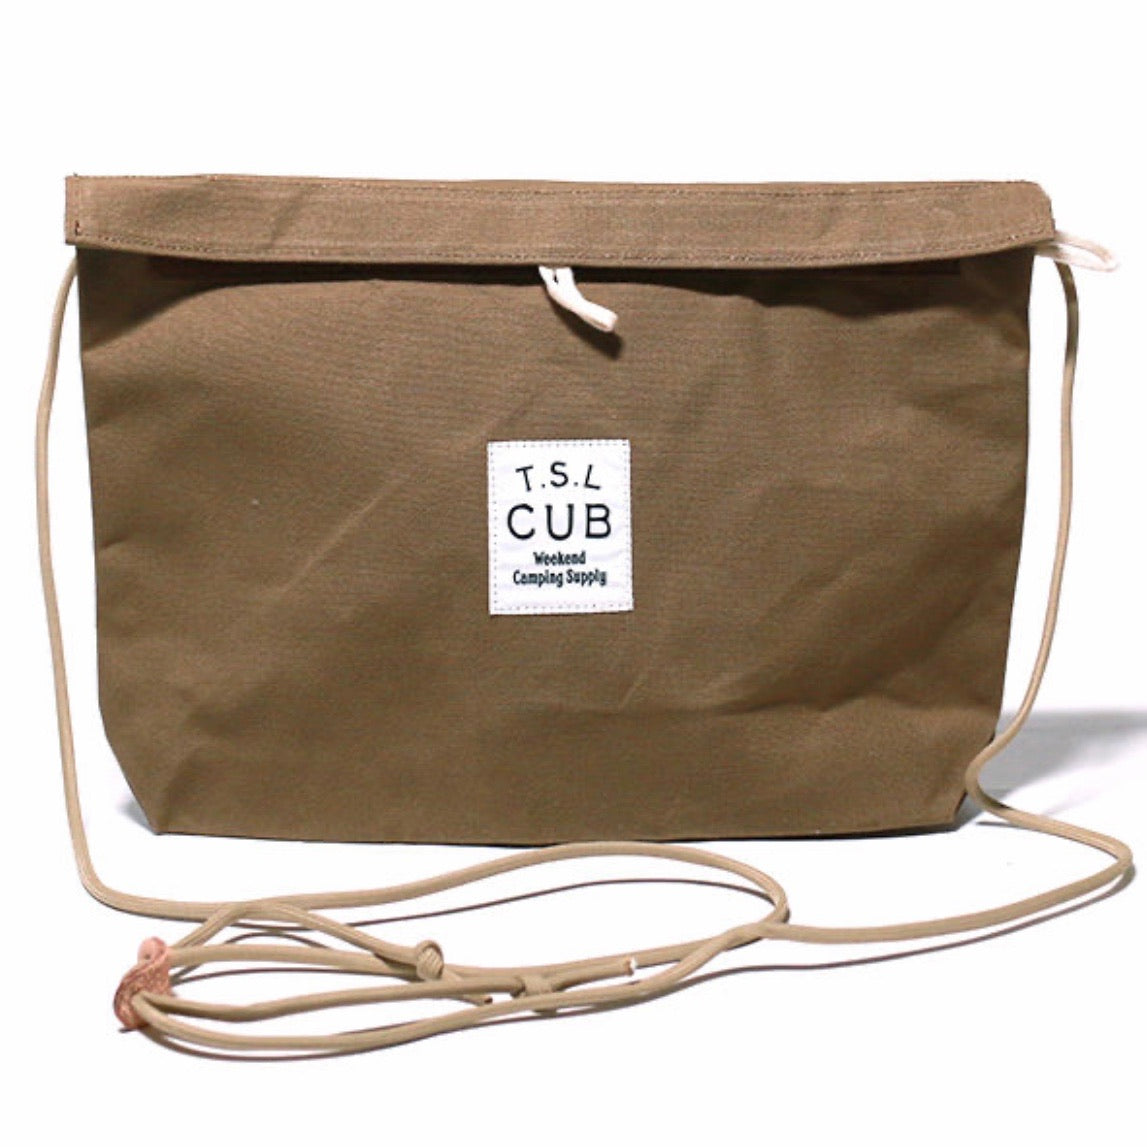 TSL CUB Sacoche L (3 Colors)